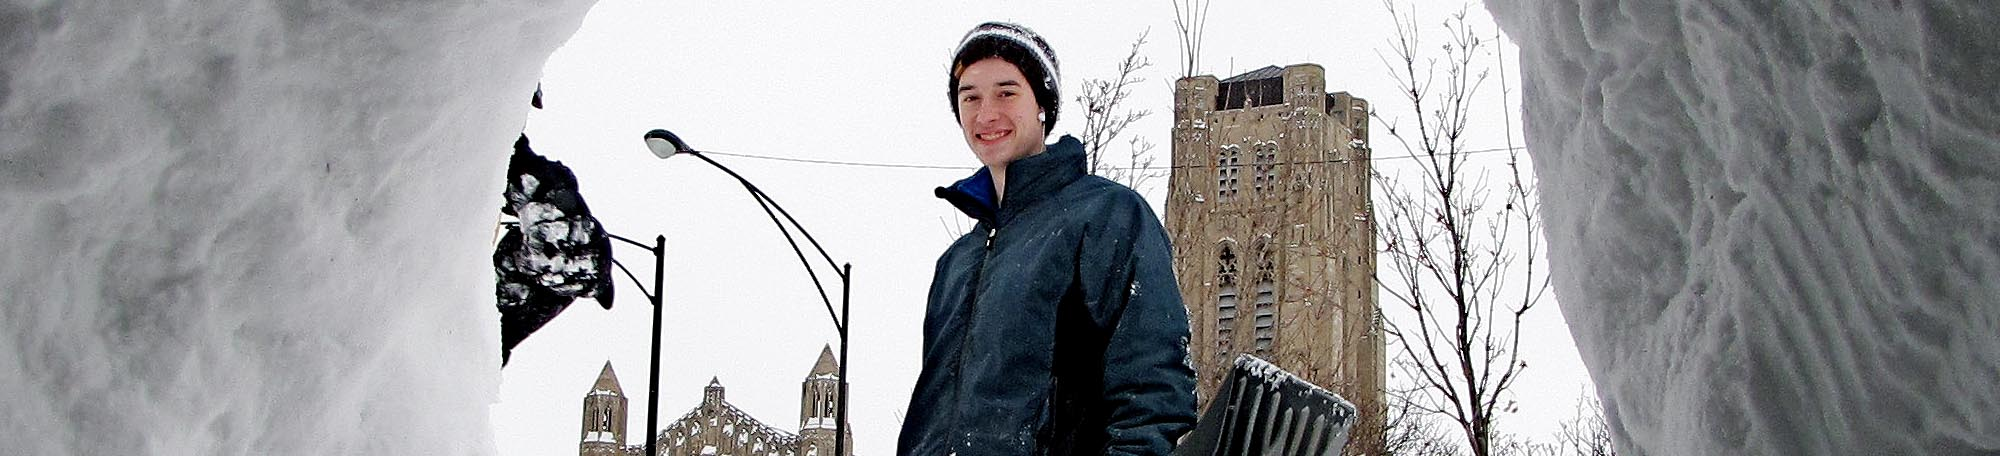 student in snow